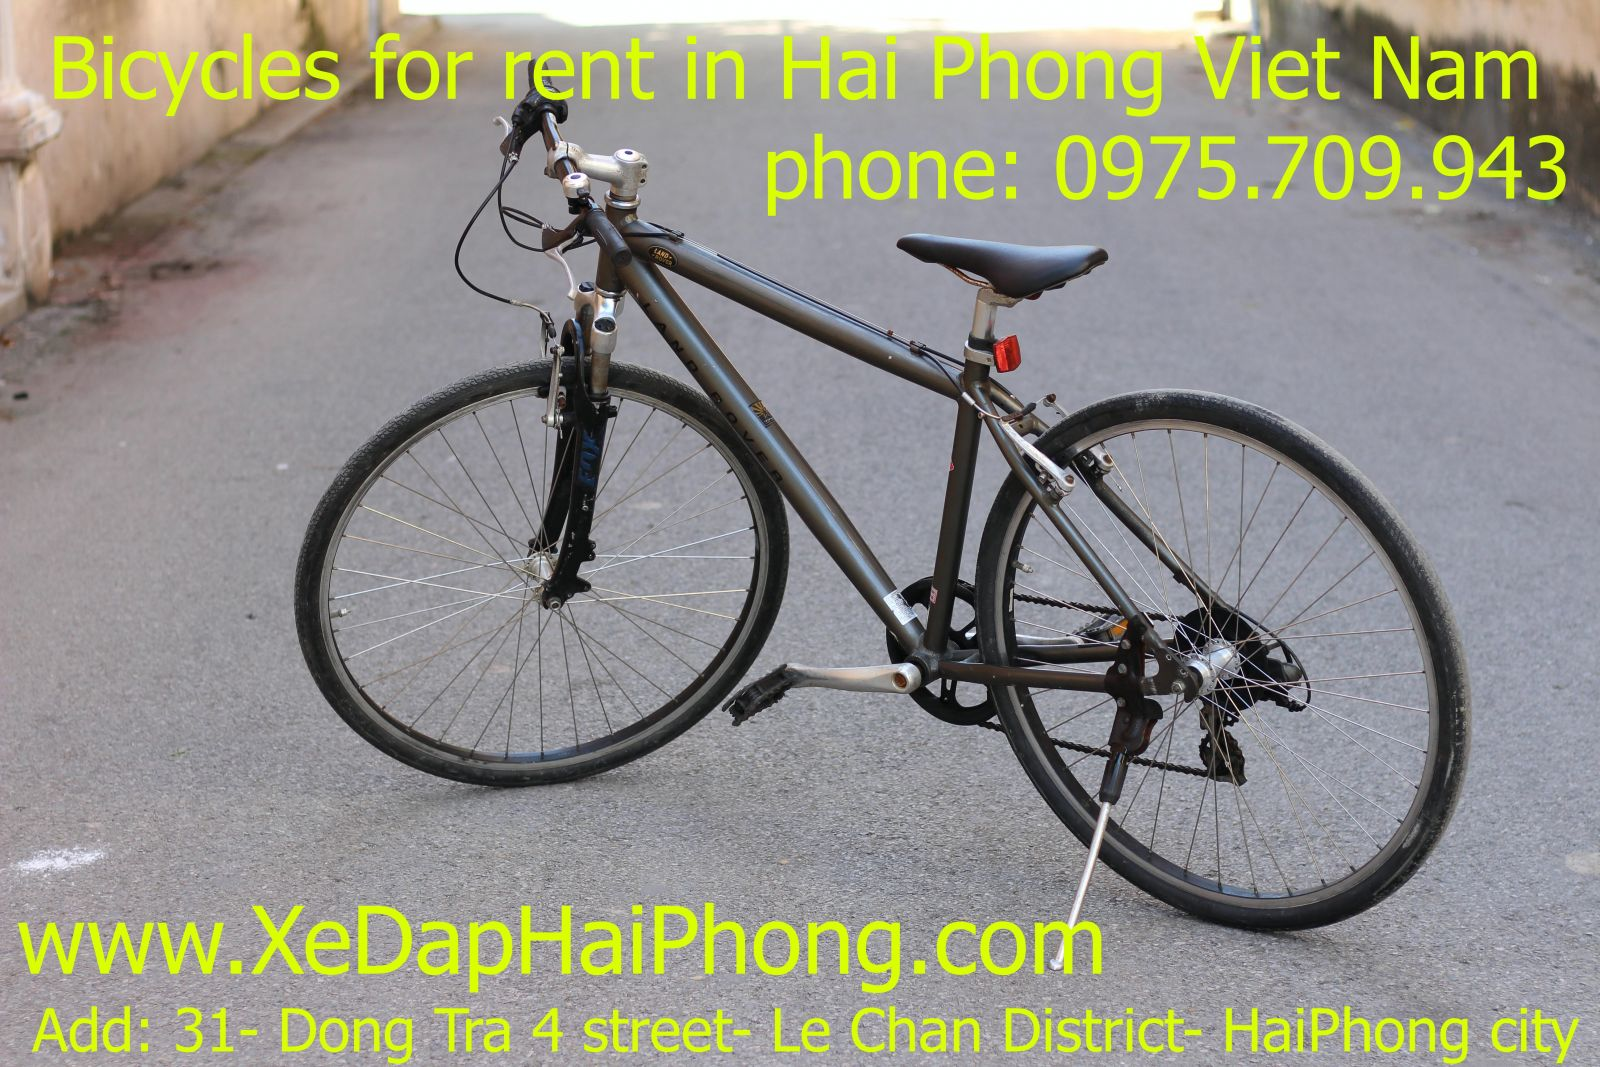 Bicycles for rent in Hai Phong Viet Nam